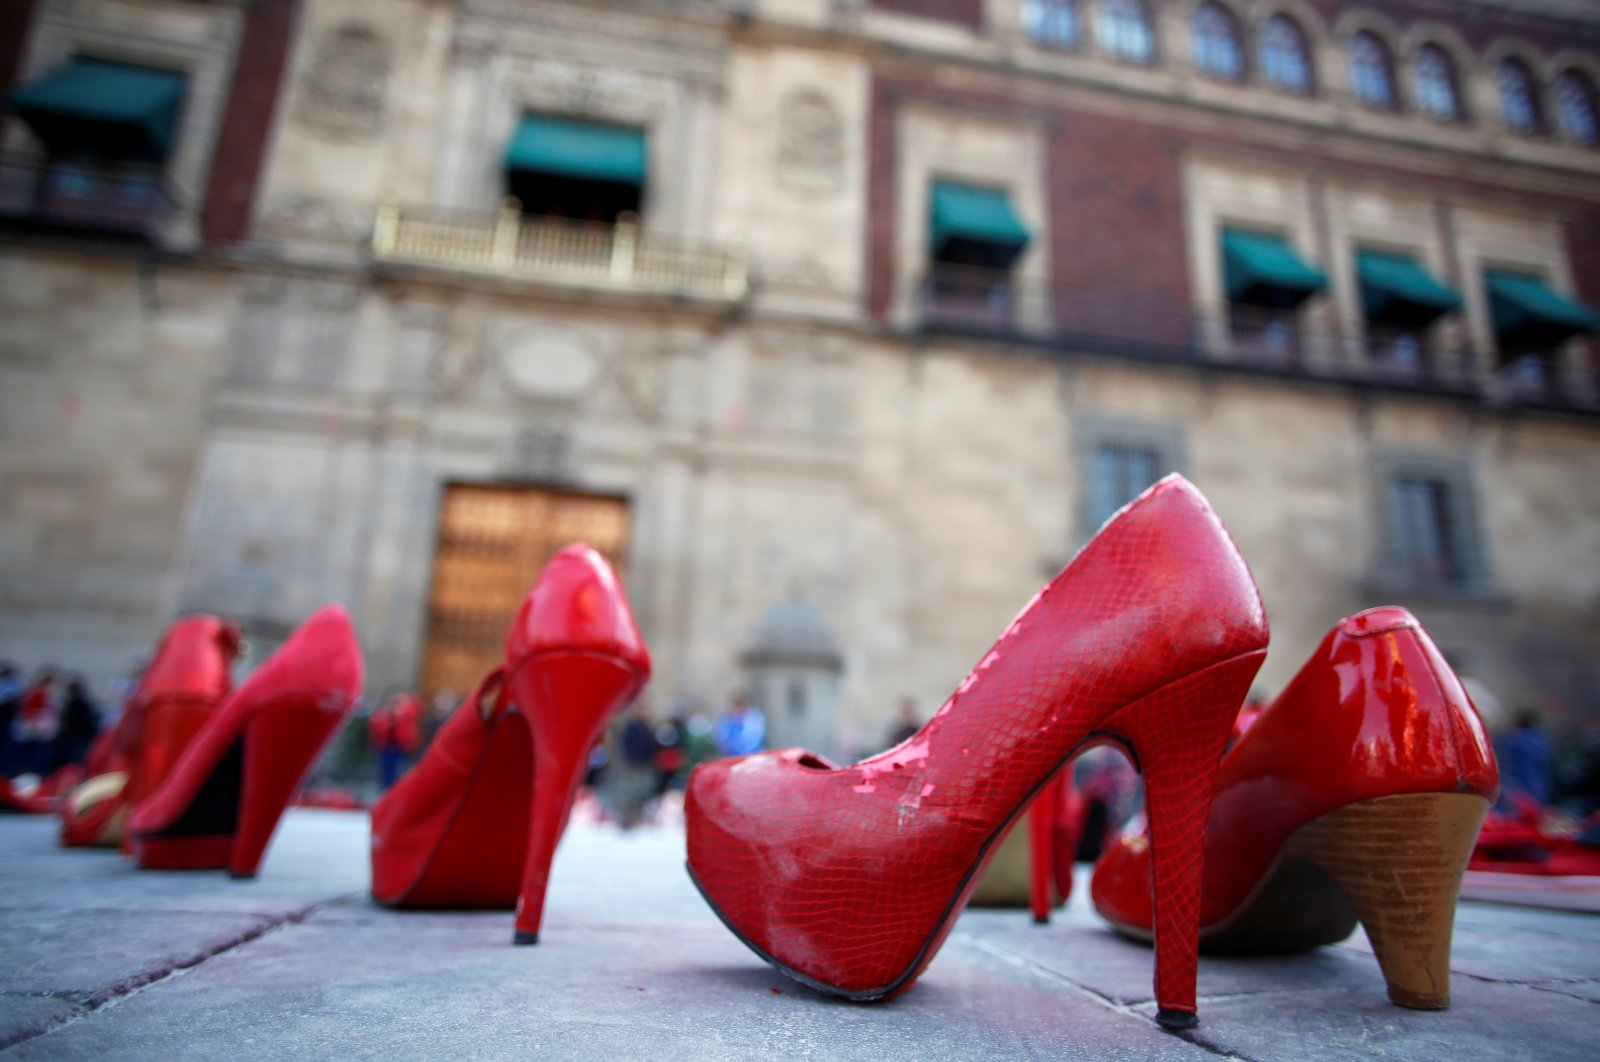 """Pairs of women's red shoes are displayed during """"A Day Without Women"""" protest, as part of the escalation of historic protests against gender violence, outside the National Palace in Mexico City, Mexico, March 9, 2020. (Reuters Photo)"""